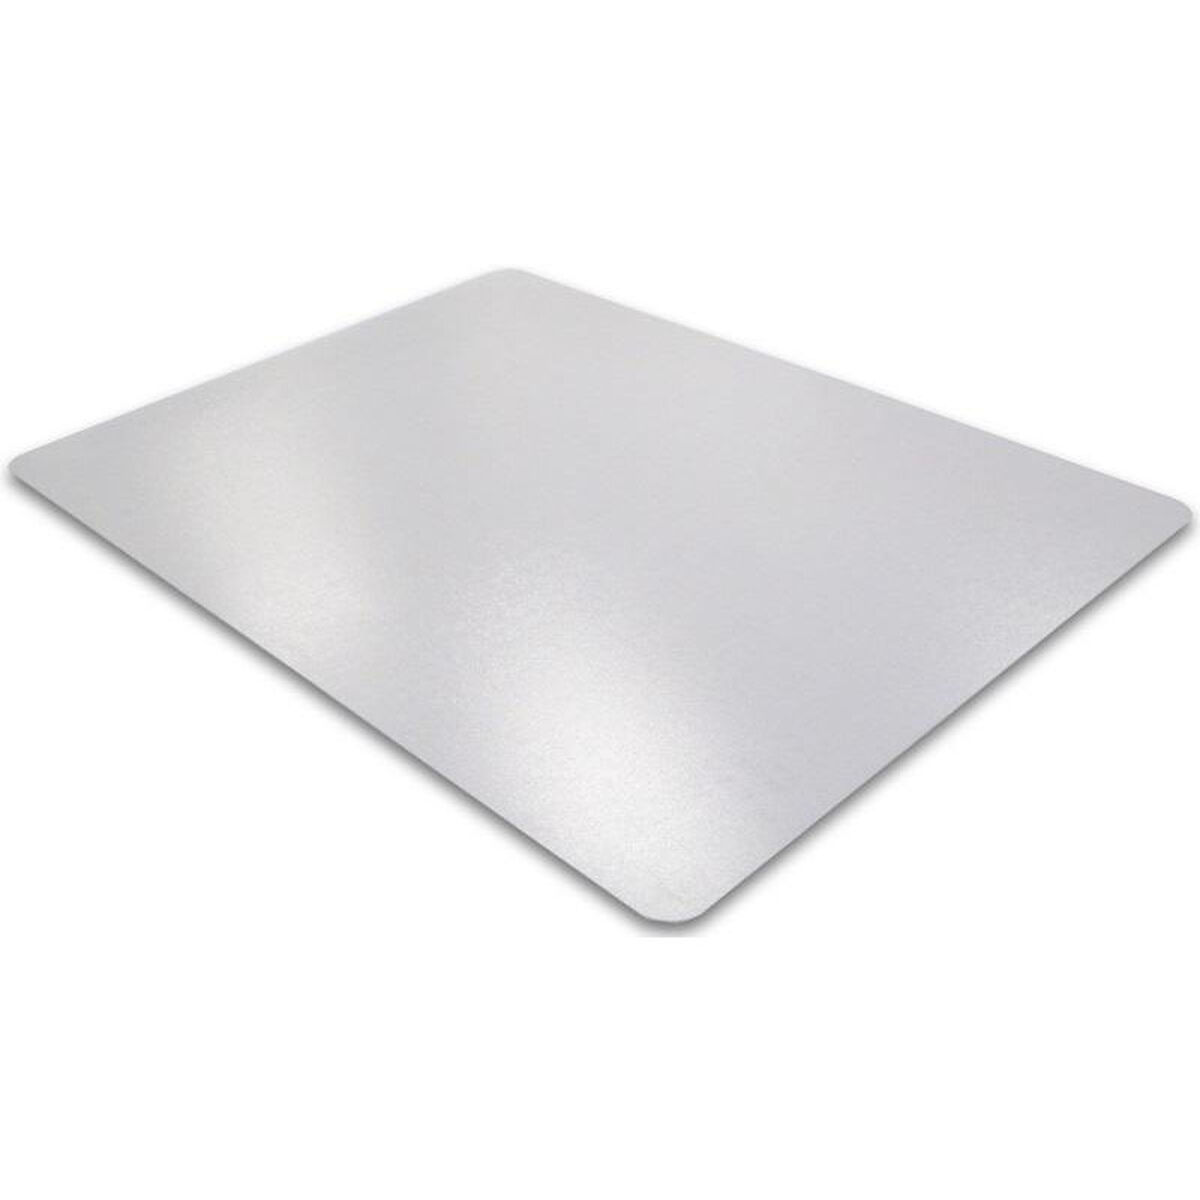 Cleartex Anti Slip Office Mat 1215020era Bizchair Com